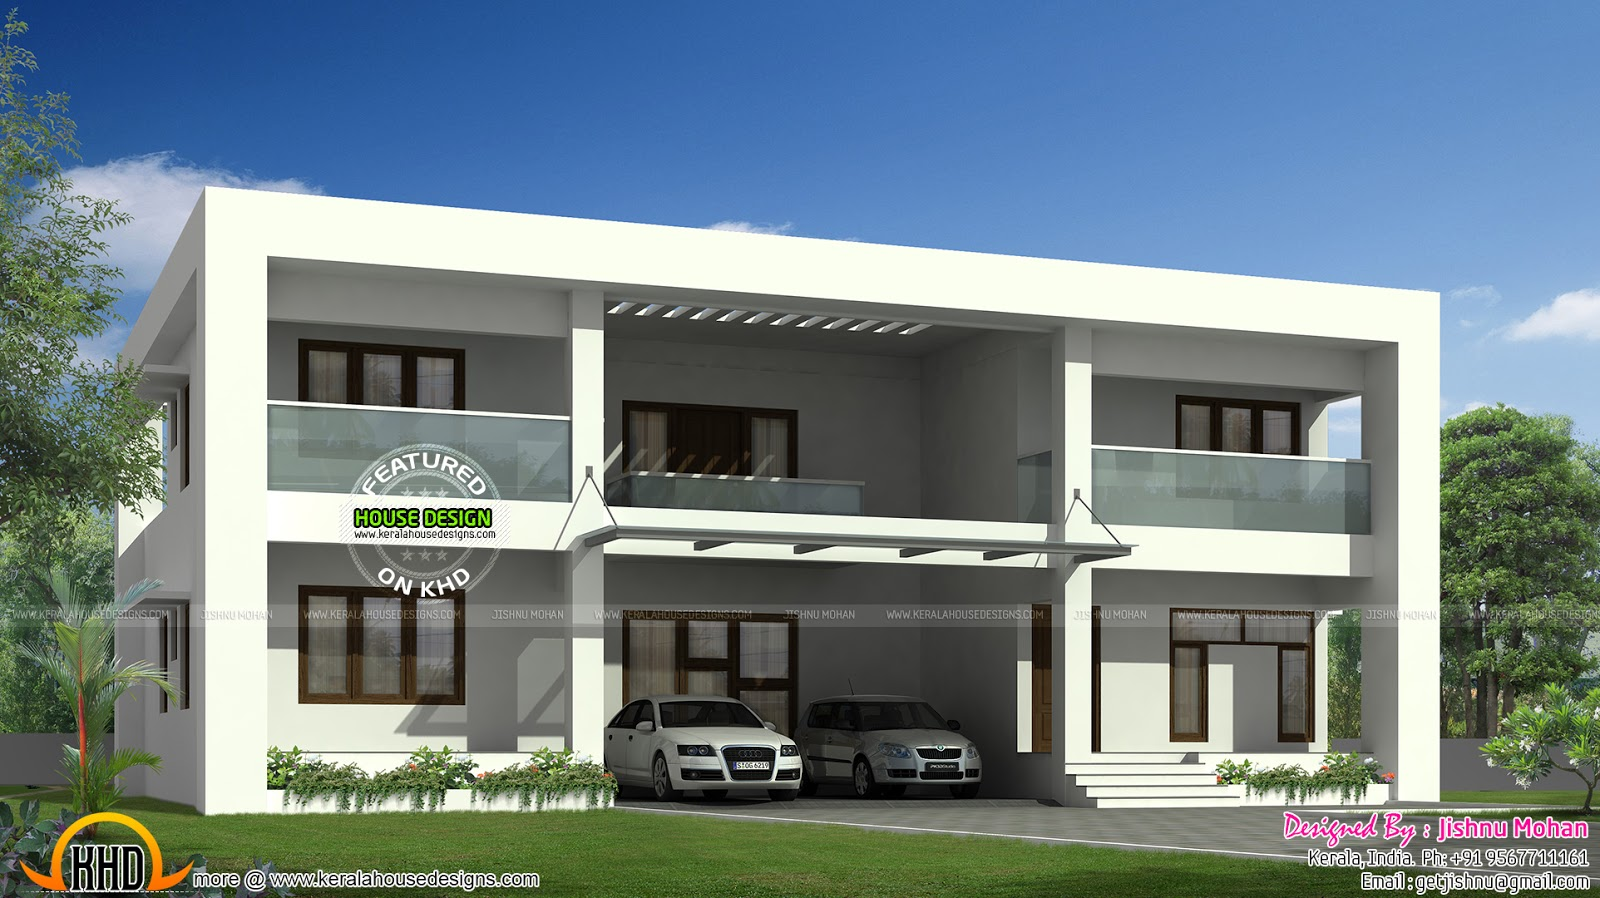 Flat roof duplex style home kerala home design and floor - Flat roof home designs ...